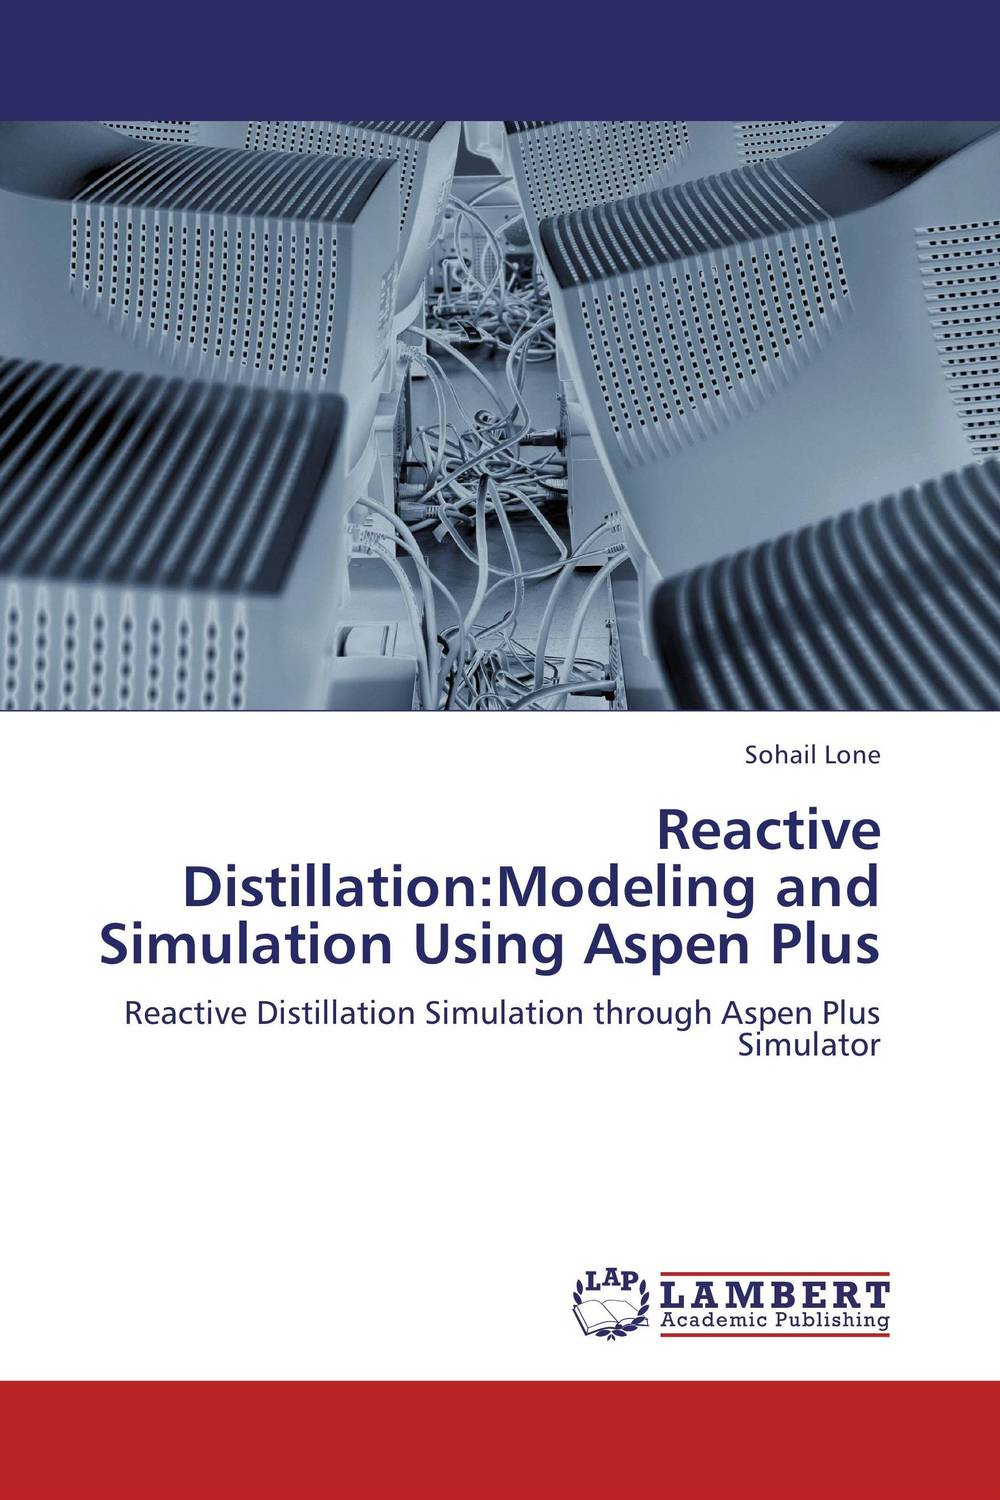 Reactive Distillation:Modeling and Simulation Using Aspen Plus a novel separation technique using hydrotropes